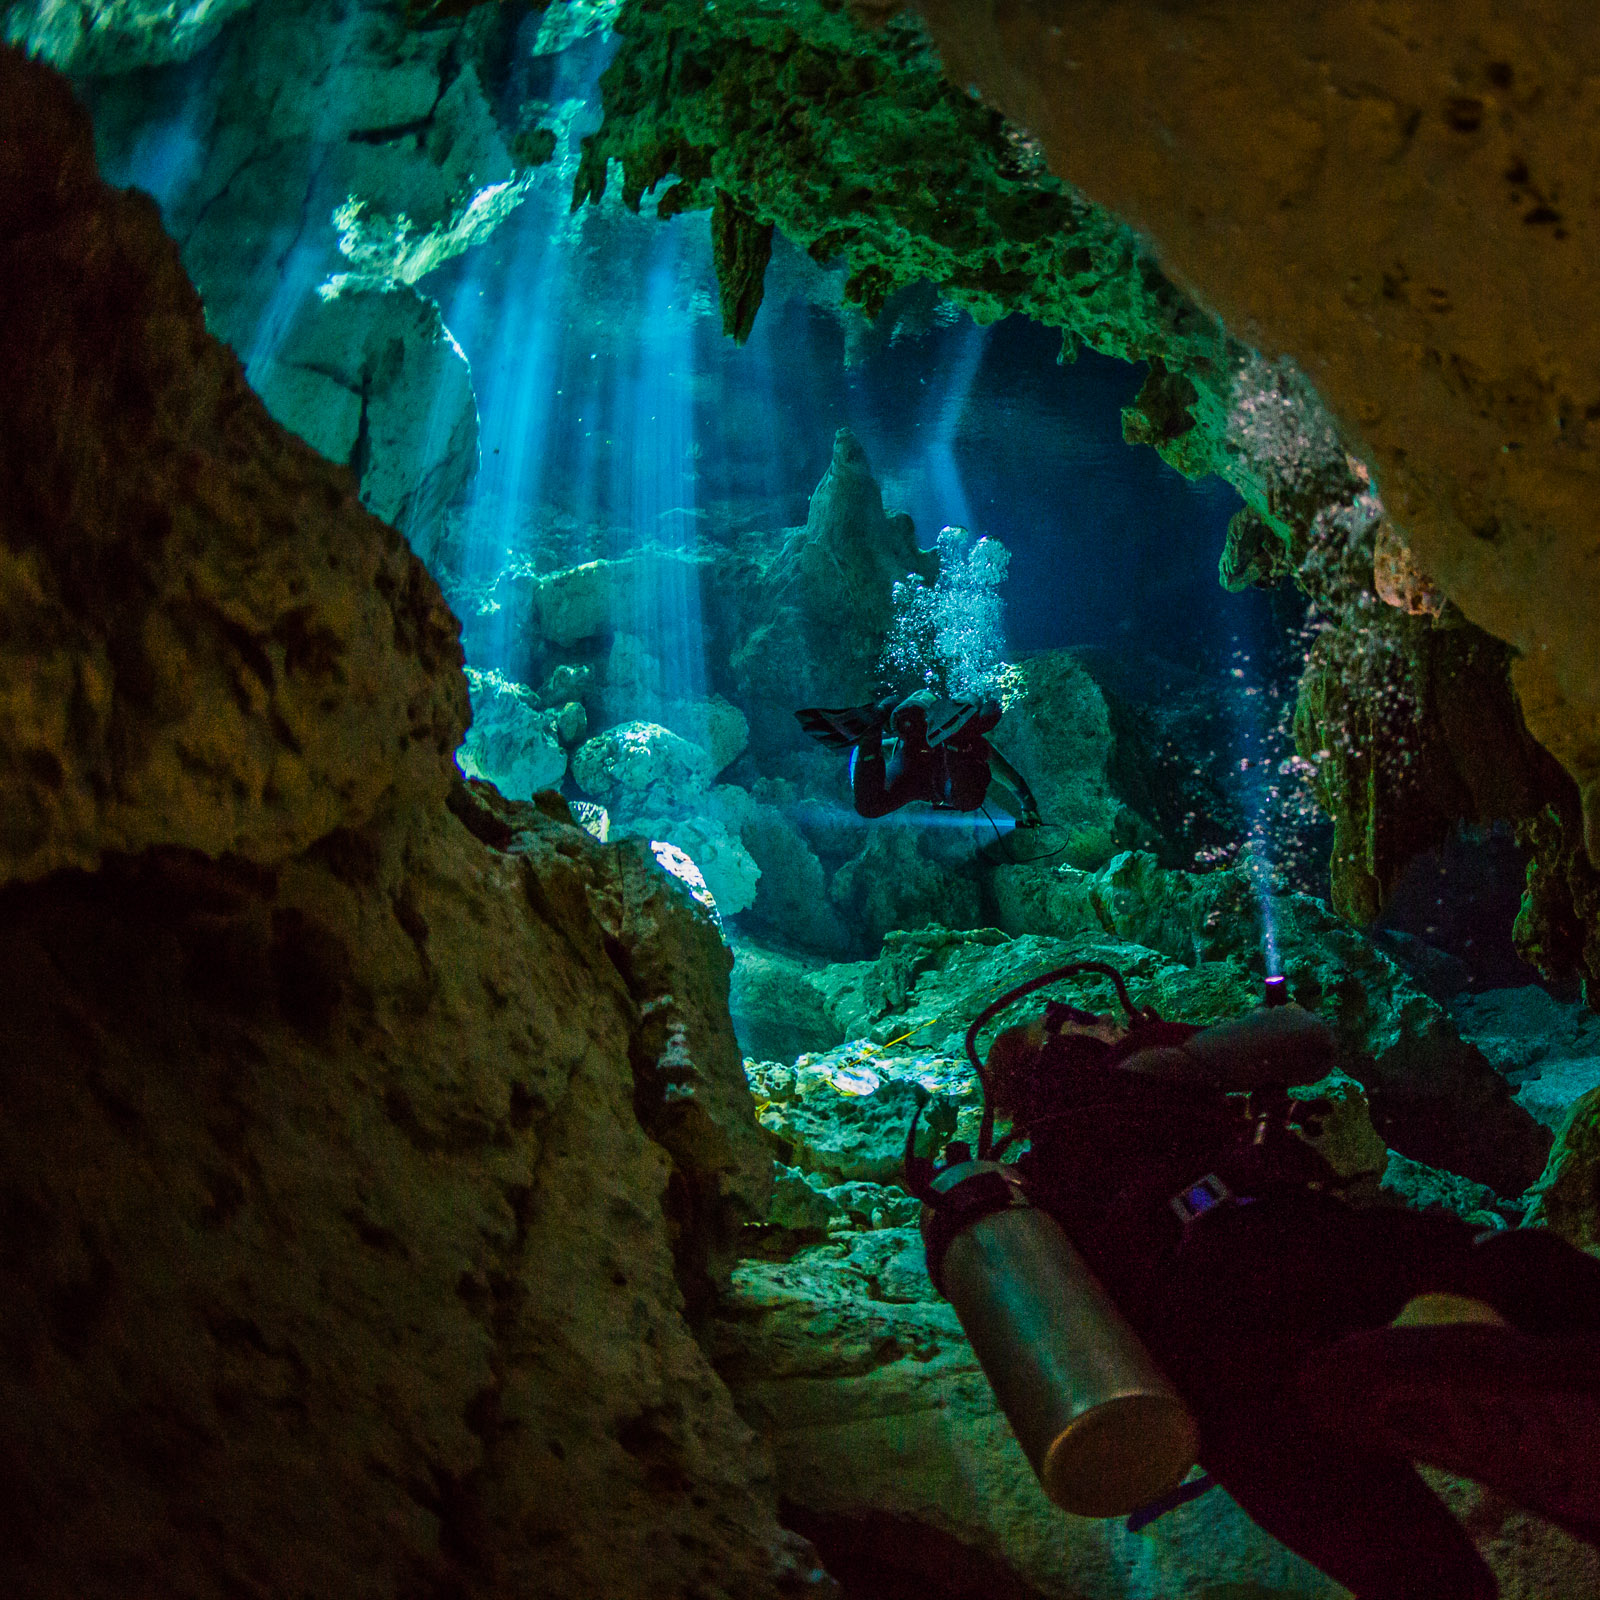 underwater photographer, undervattensfotograf, cave diving, grottdykning, mexico, mexiko, cenote, sunrays, adventure photographer, adventure, äventyrsfotograf, äventyr, underwater photo, undervattensfoto, cave diver, grottdykare, anhede